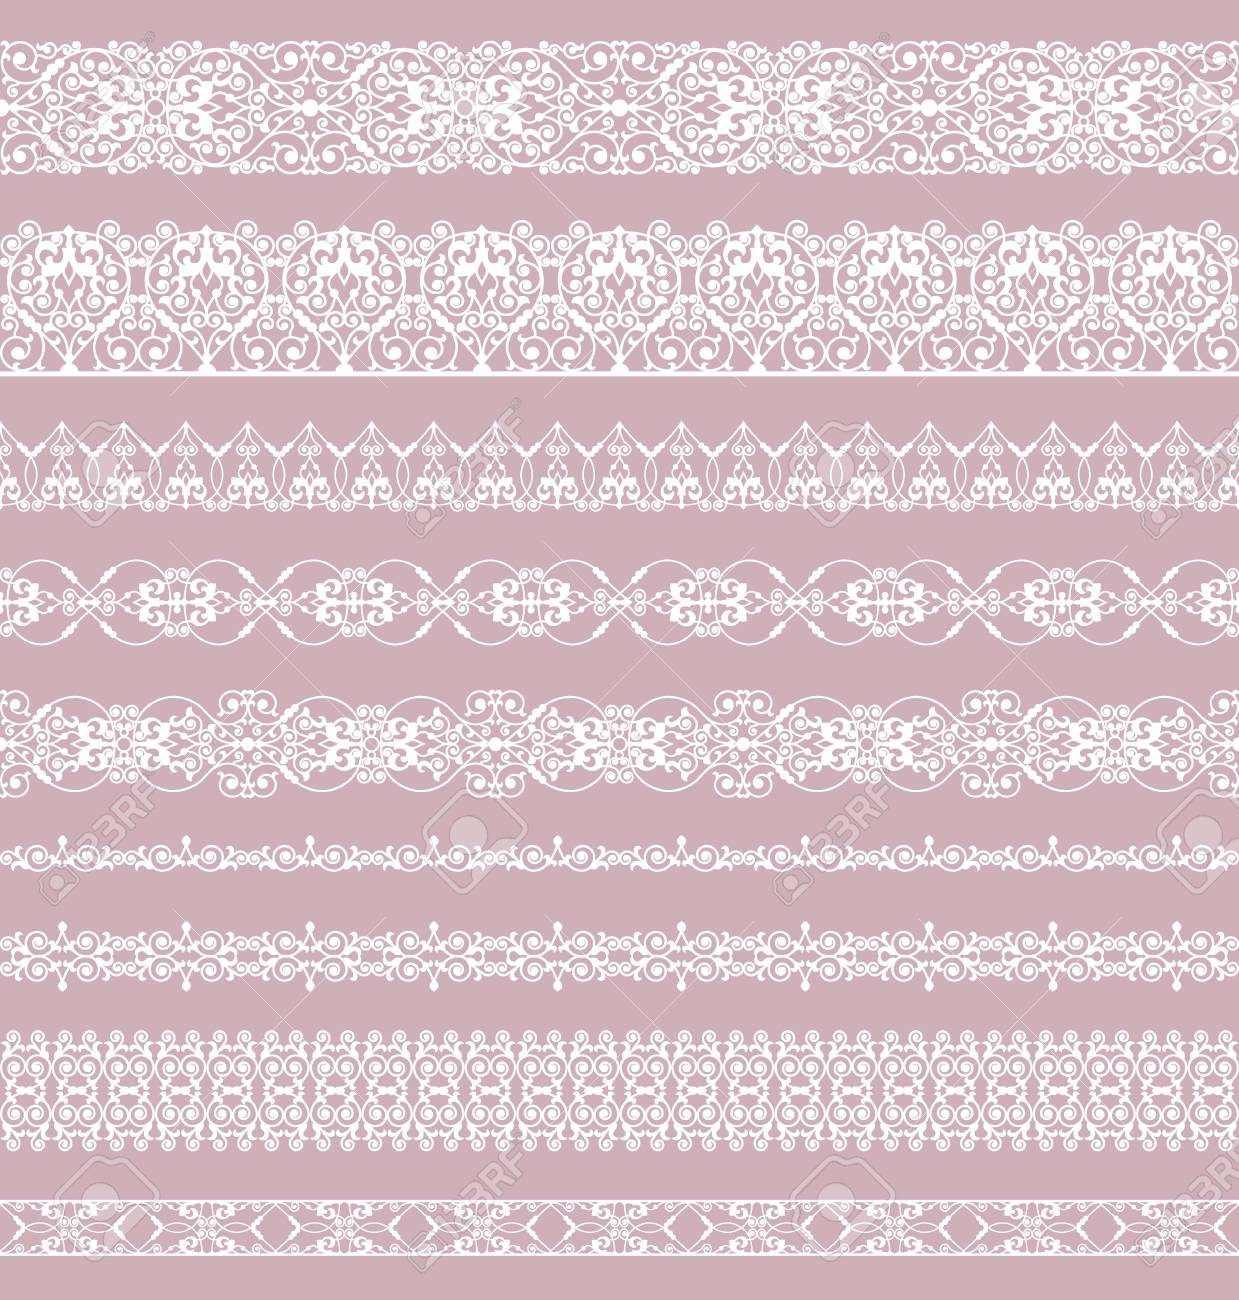 Set of white borders on a pink background - 125006566